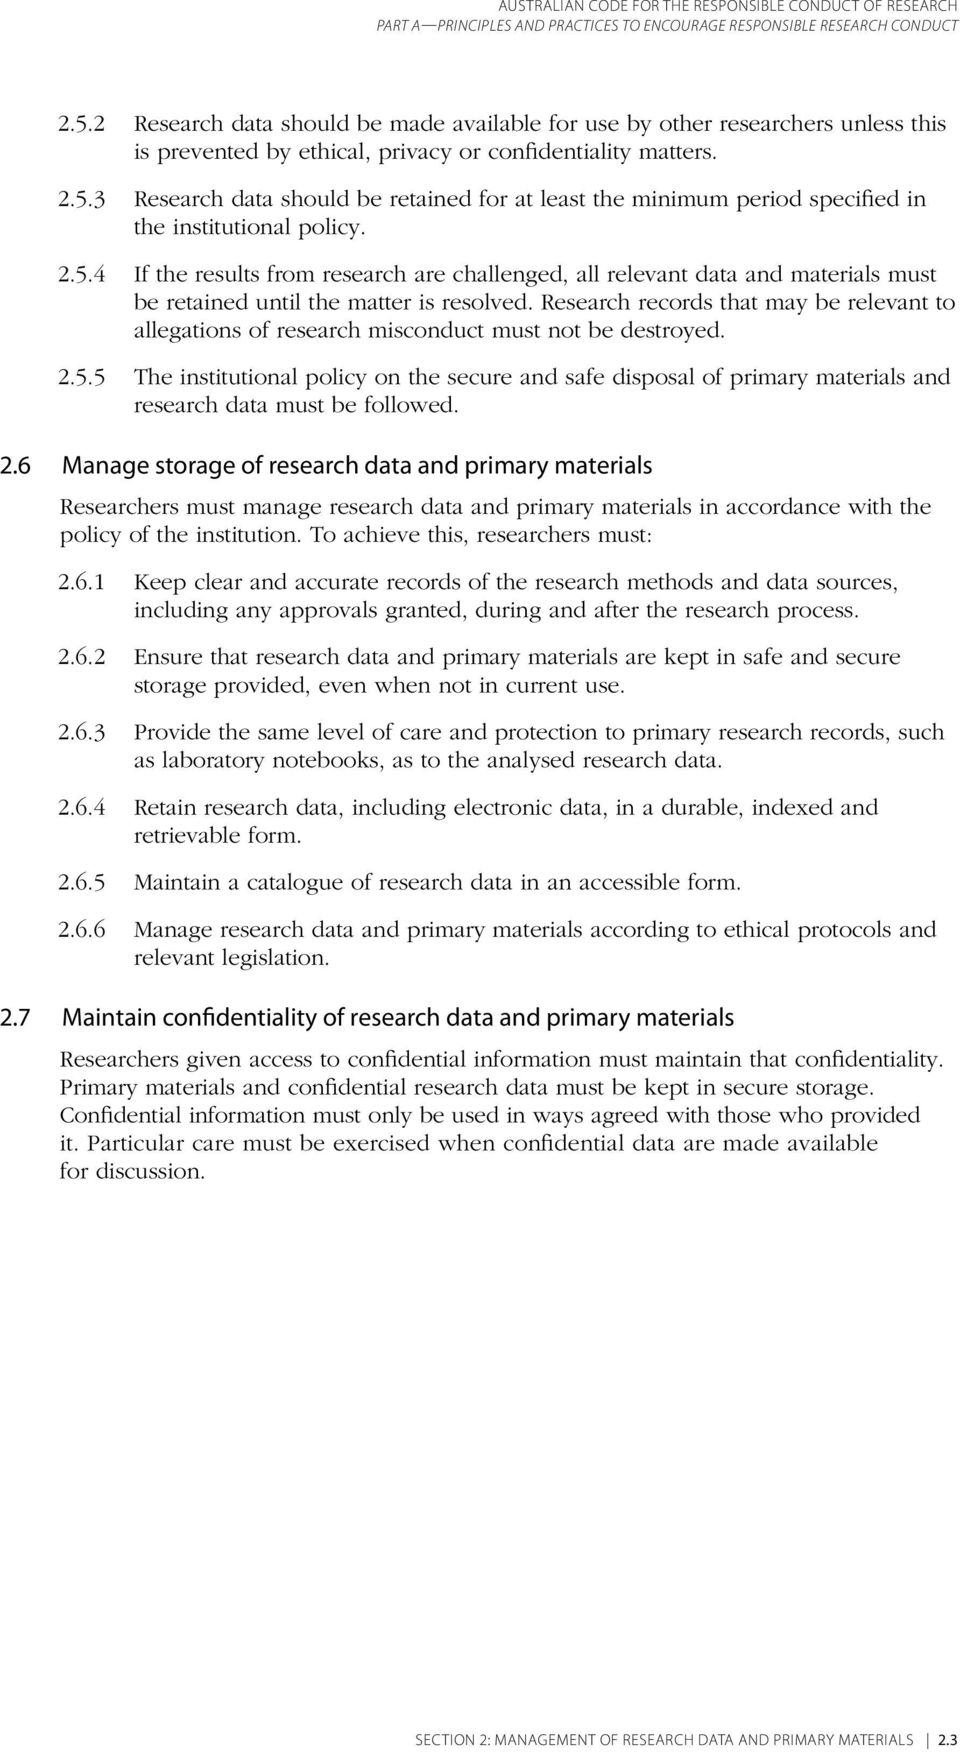 3 Research data should be retained for at least the minimum period specified in the institutional policy. 2.5.